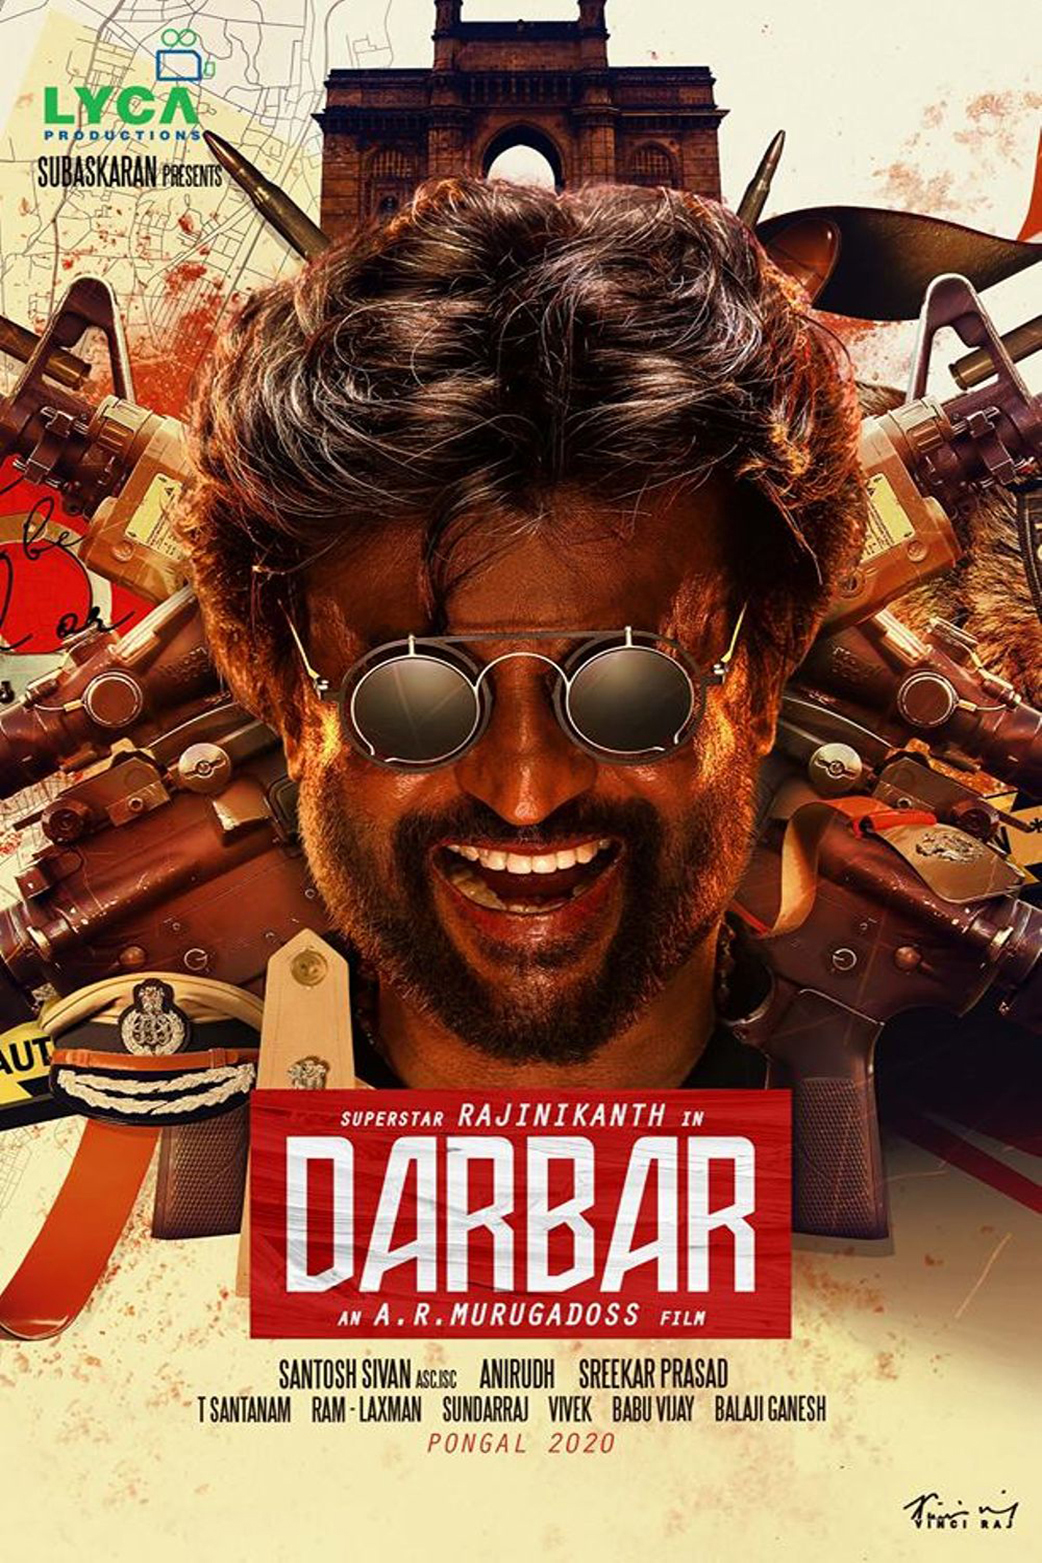 Still of Darbar